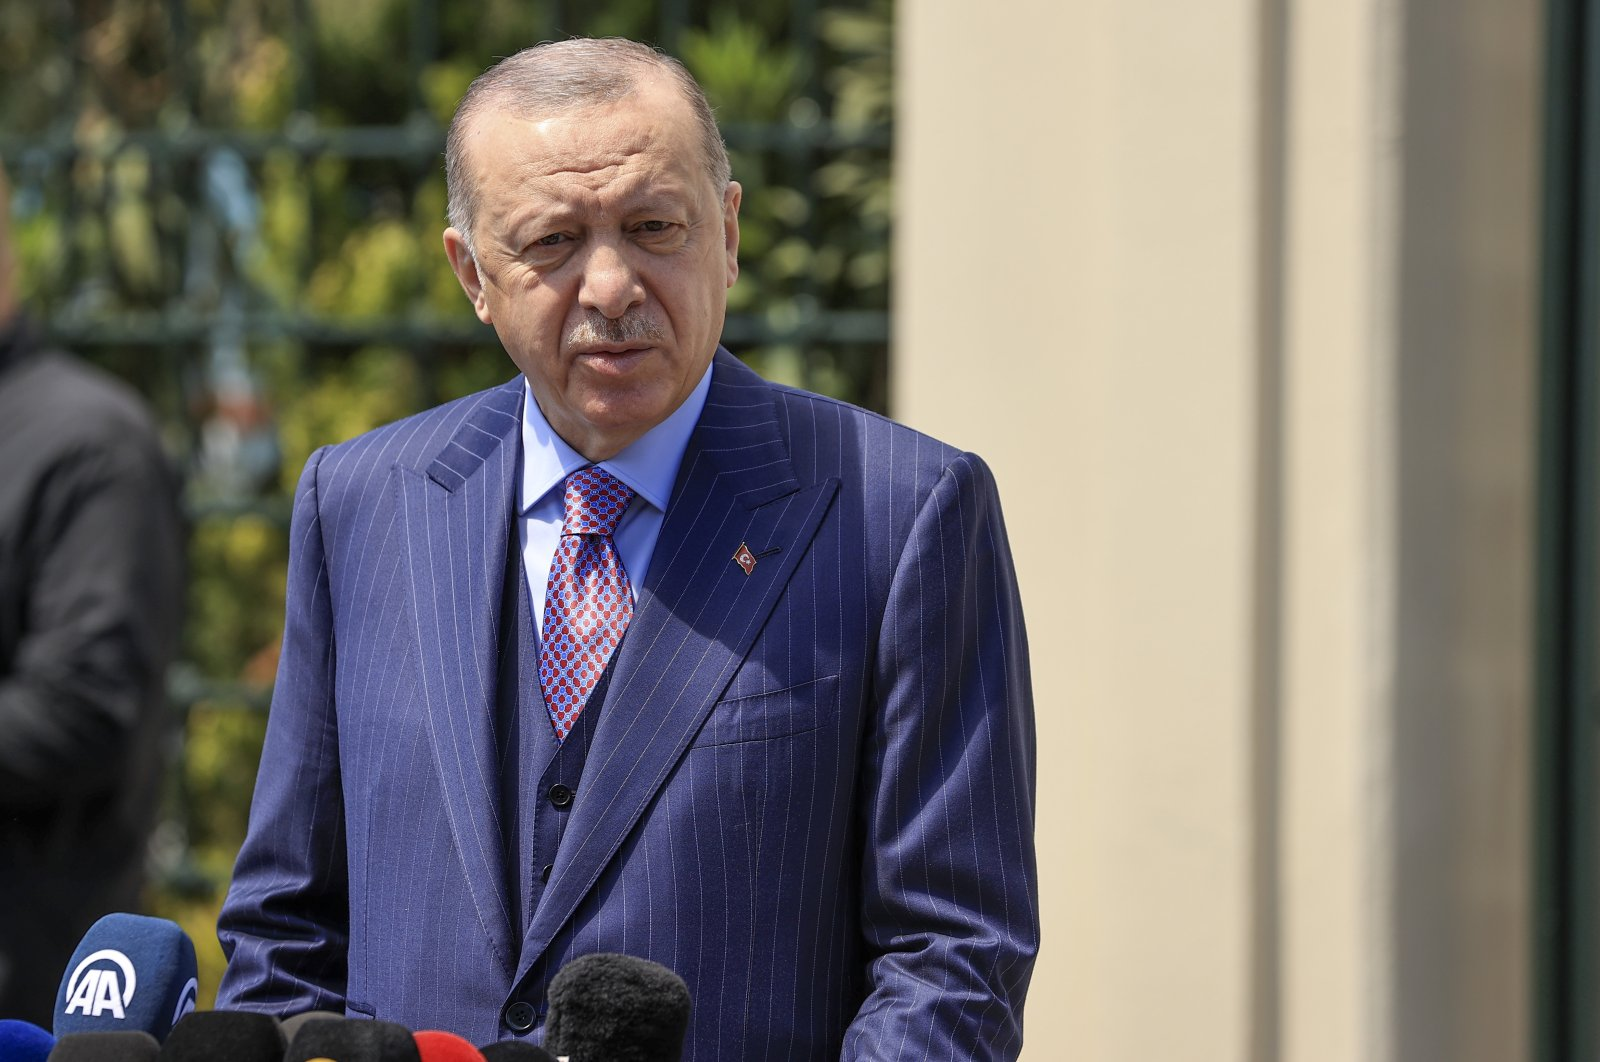 President Recep Tayyip Erdoğan speaks at the Ali Cami mosque after a Friday prayer, Istanbul, Turkey, May. 7, 2021. (AA Photo)